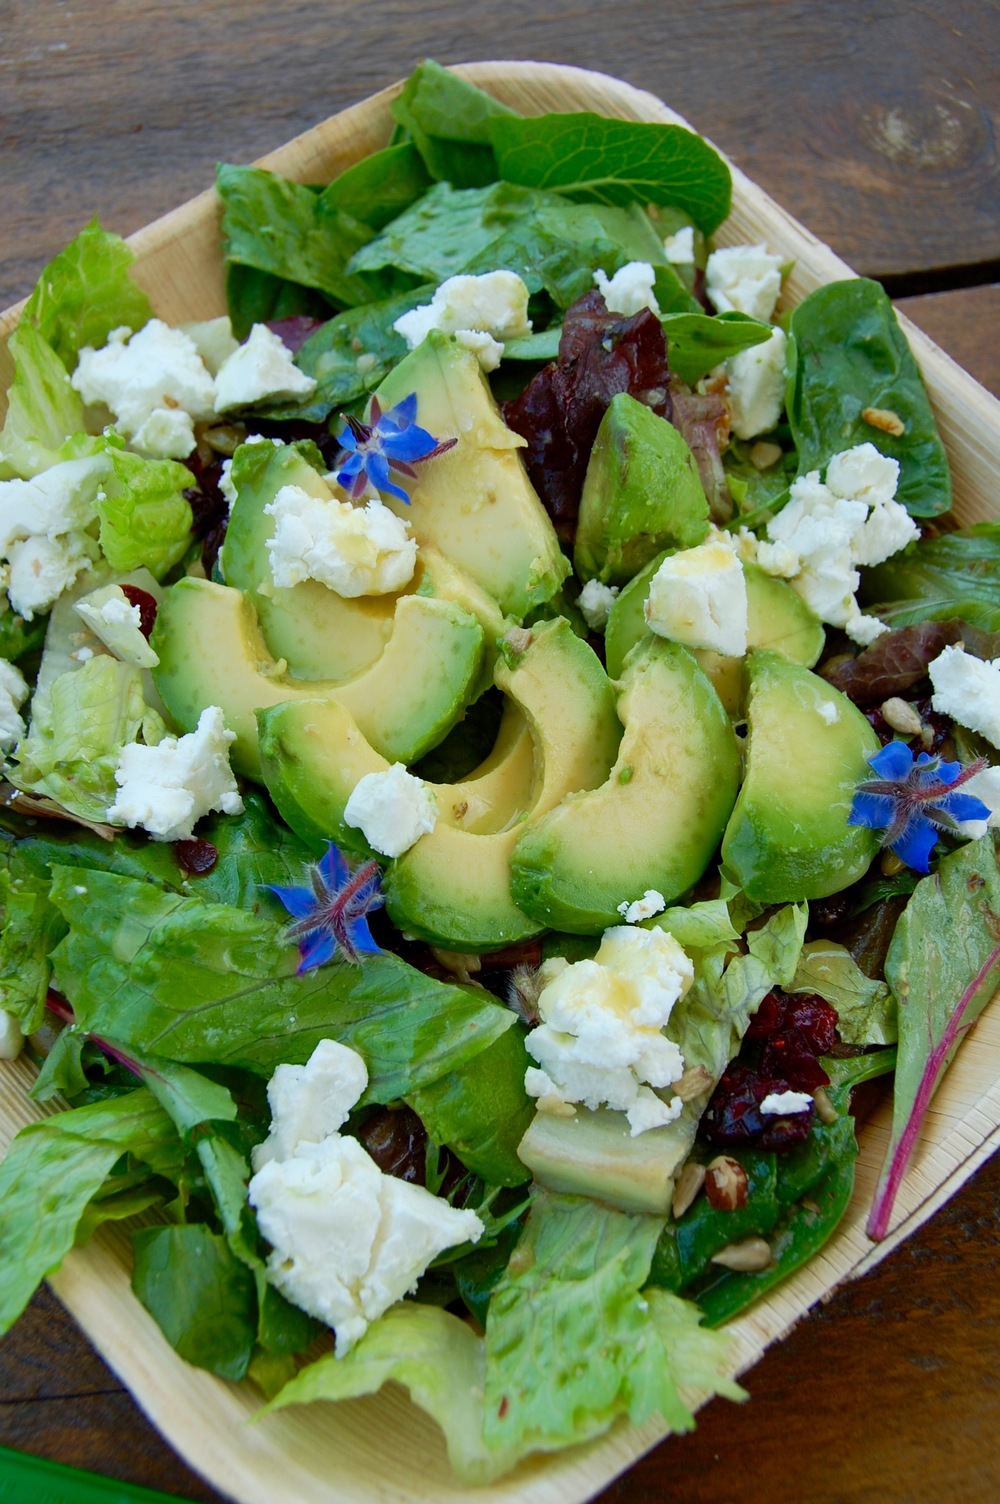 Buttery avocado + edible flowers + super creamy feta + farm-fresh greens = perfect salad